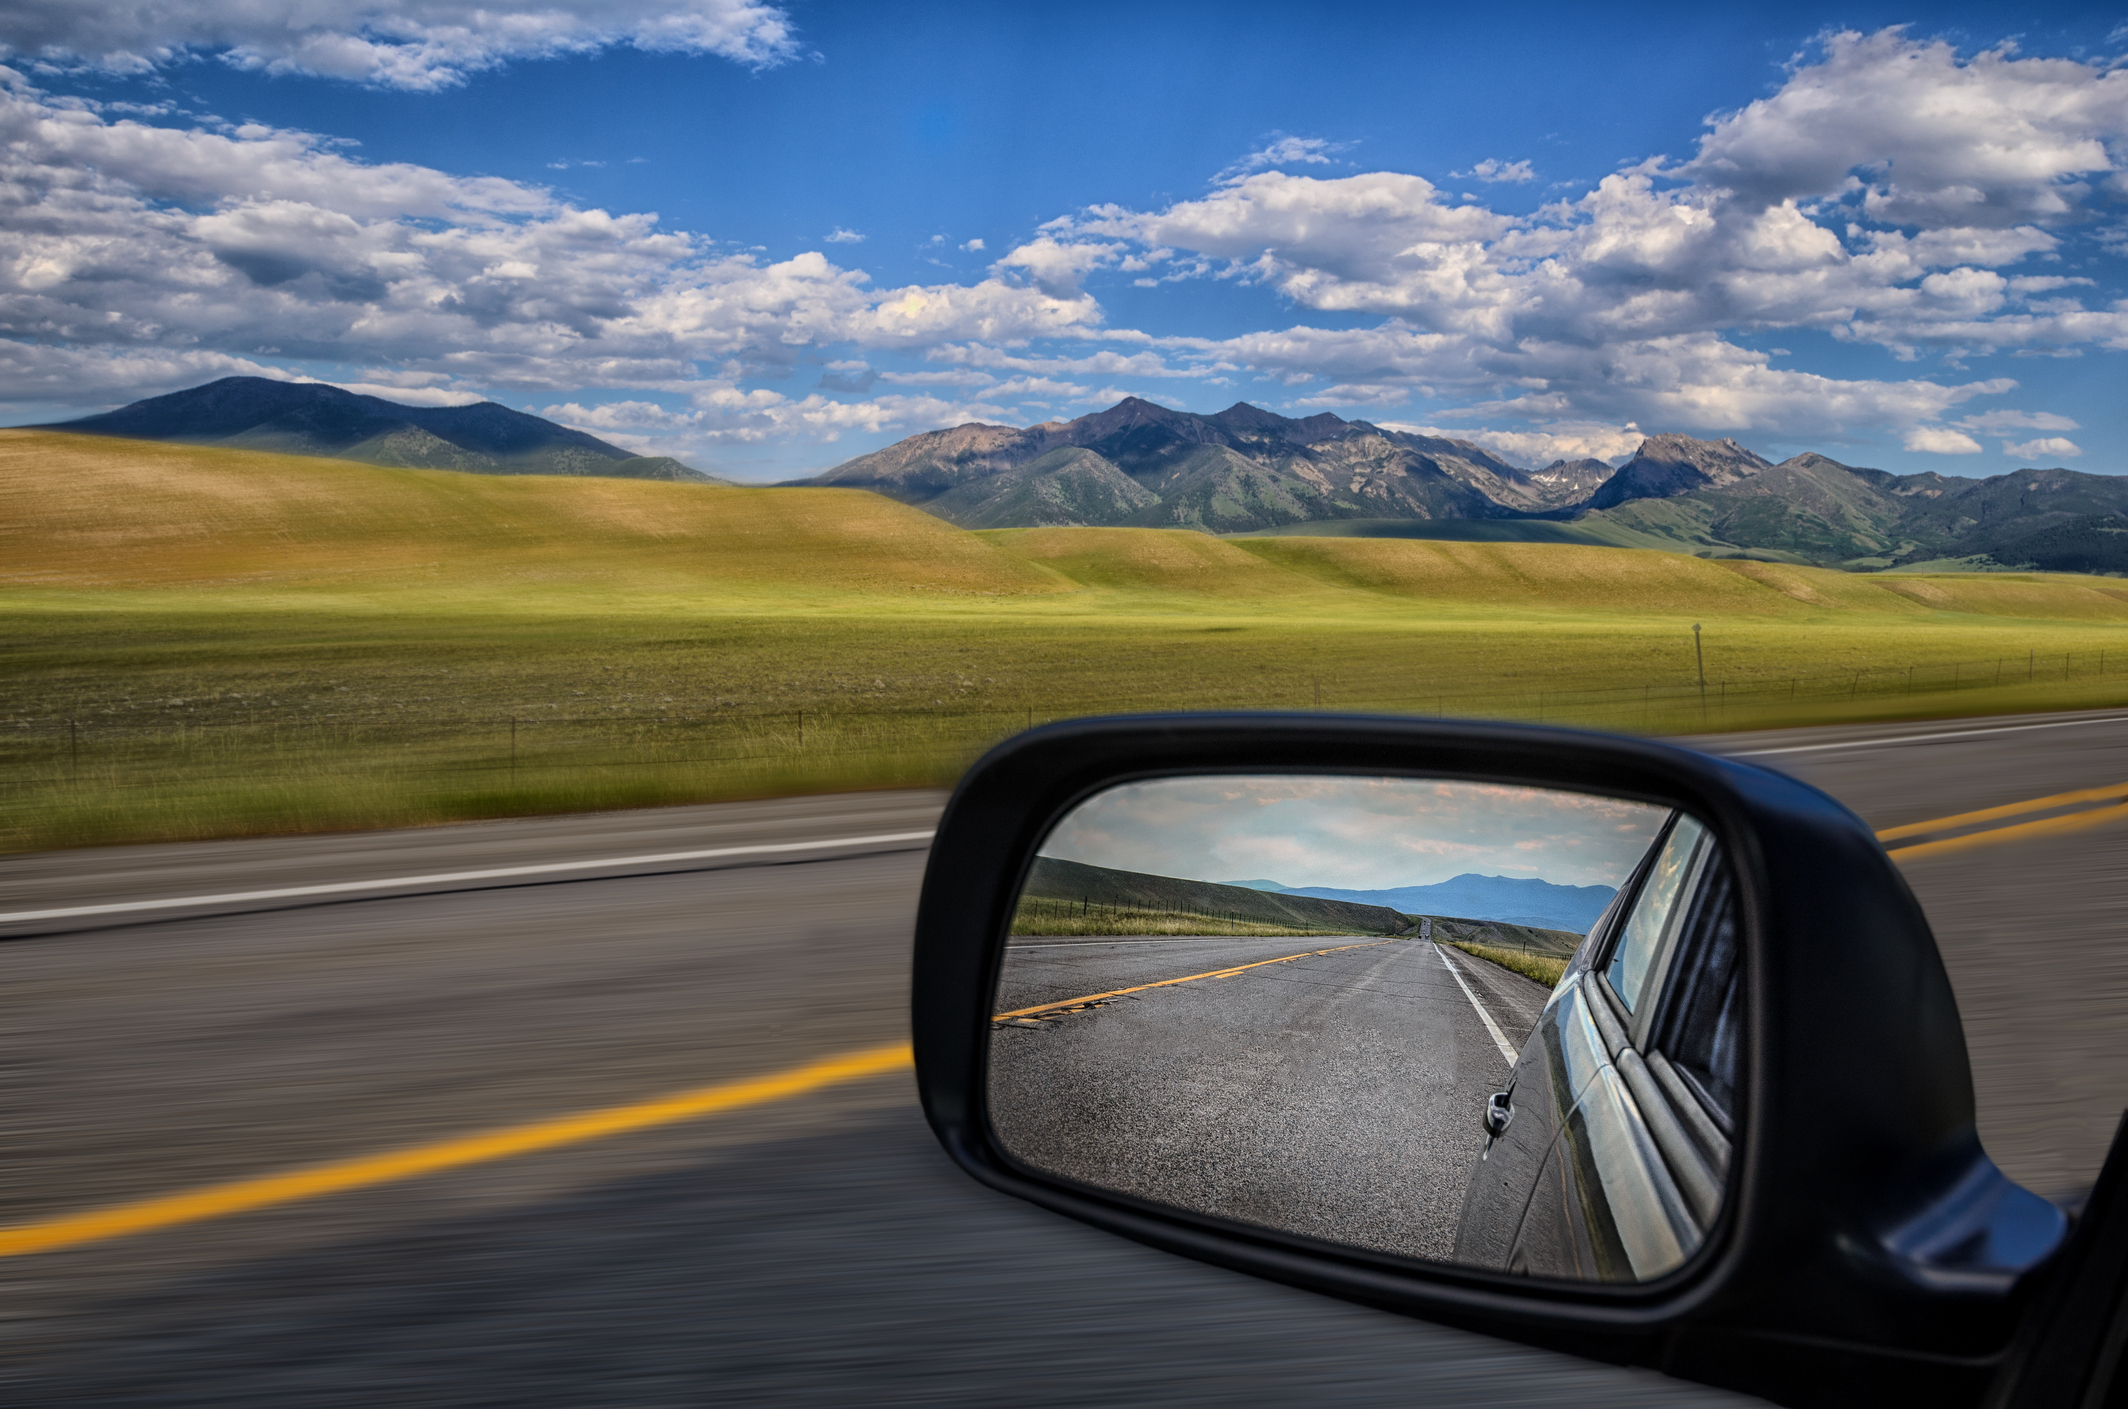 Mirrors are for glancing back and the windshield is for seeing where you wanna go!